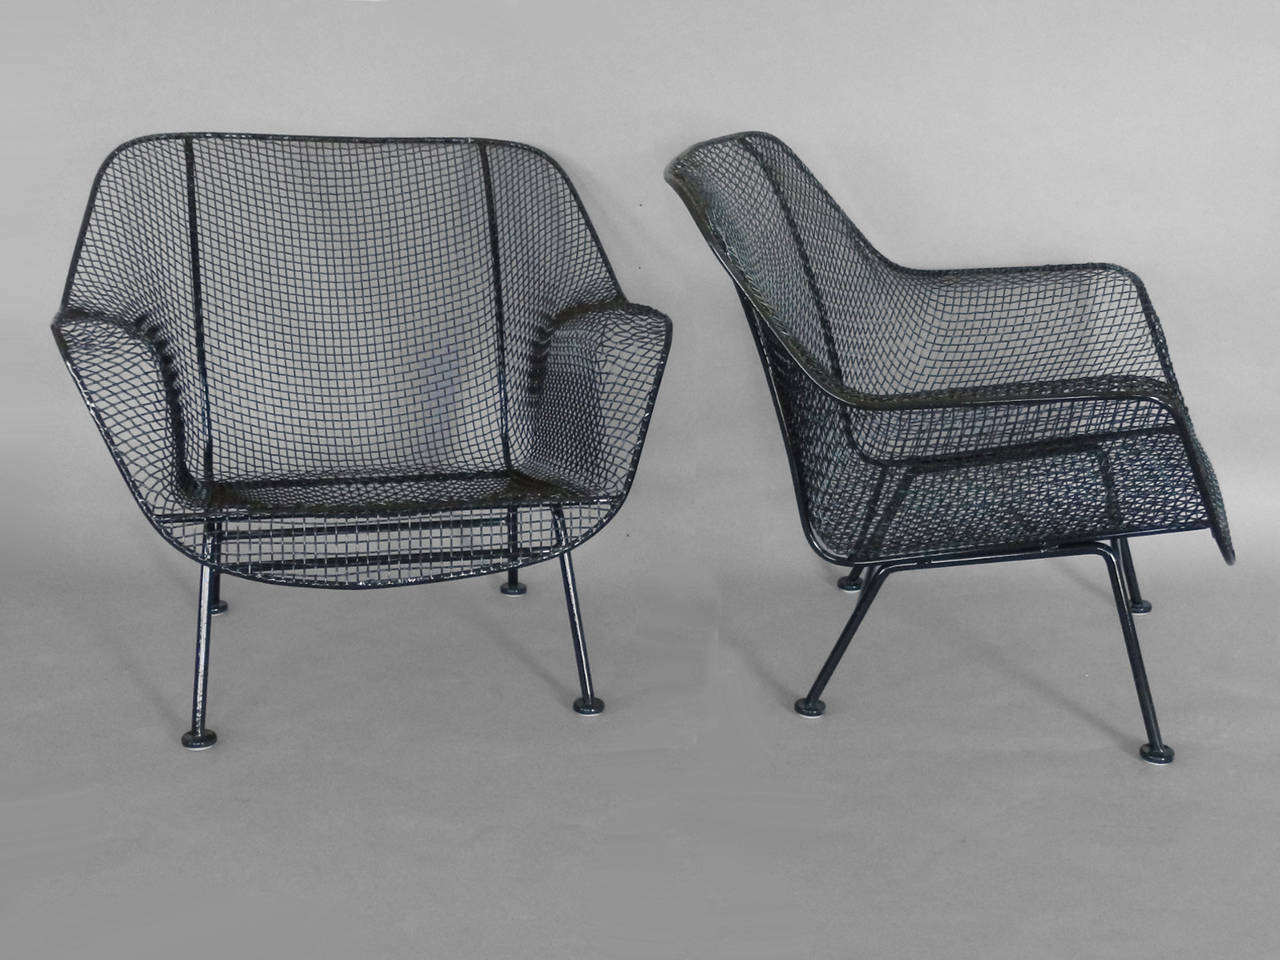 Pair of Woodard Wrought Iron with Mesh Lounge Chairs For Sale at 1stdibs